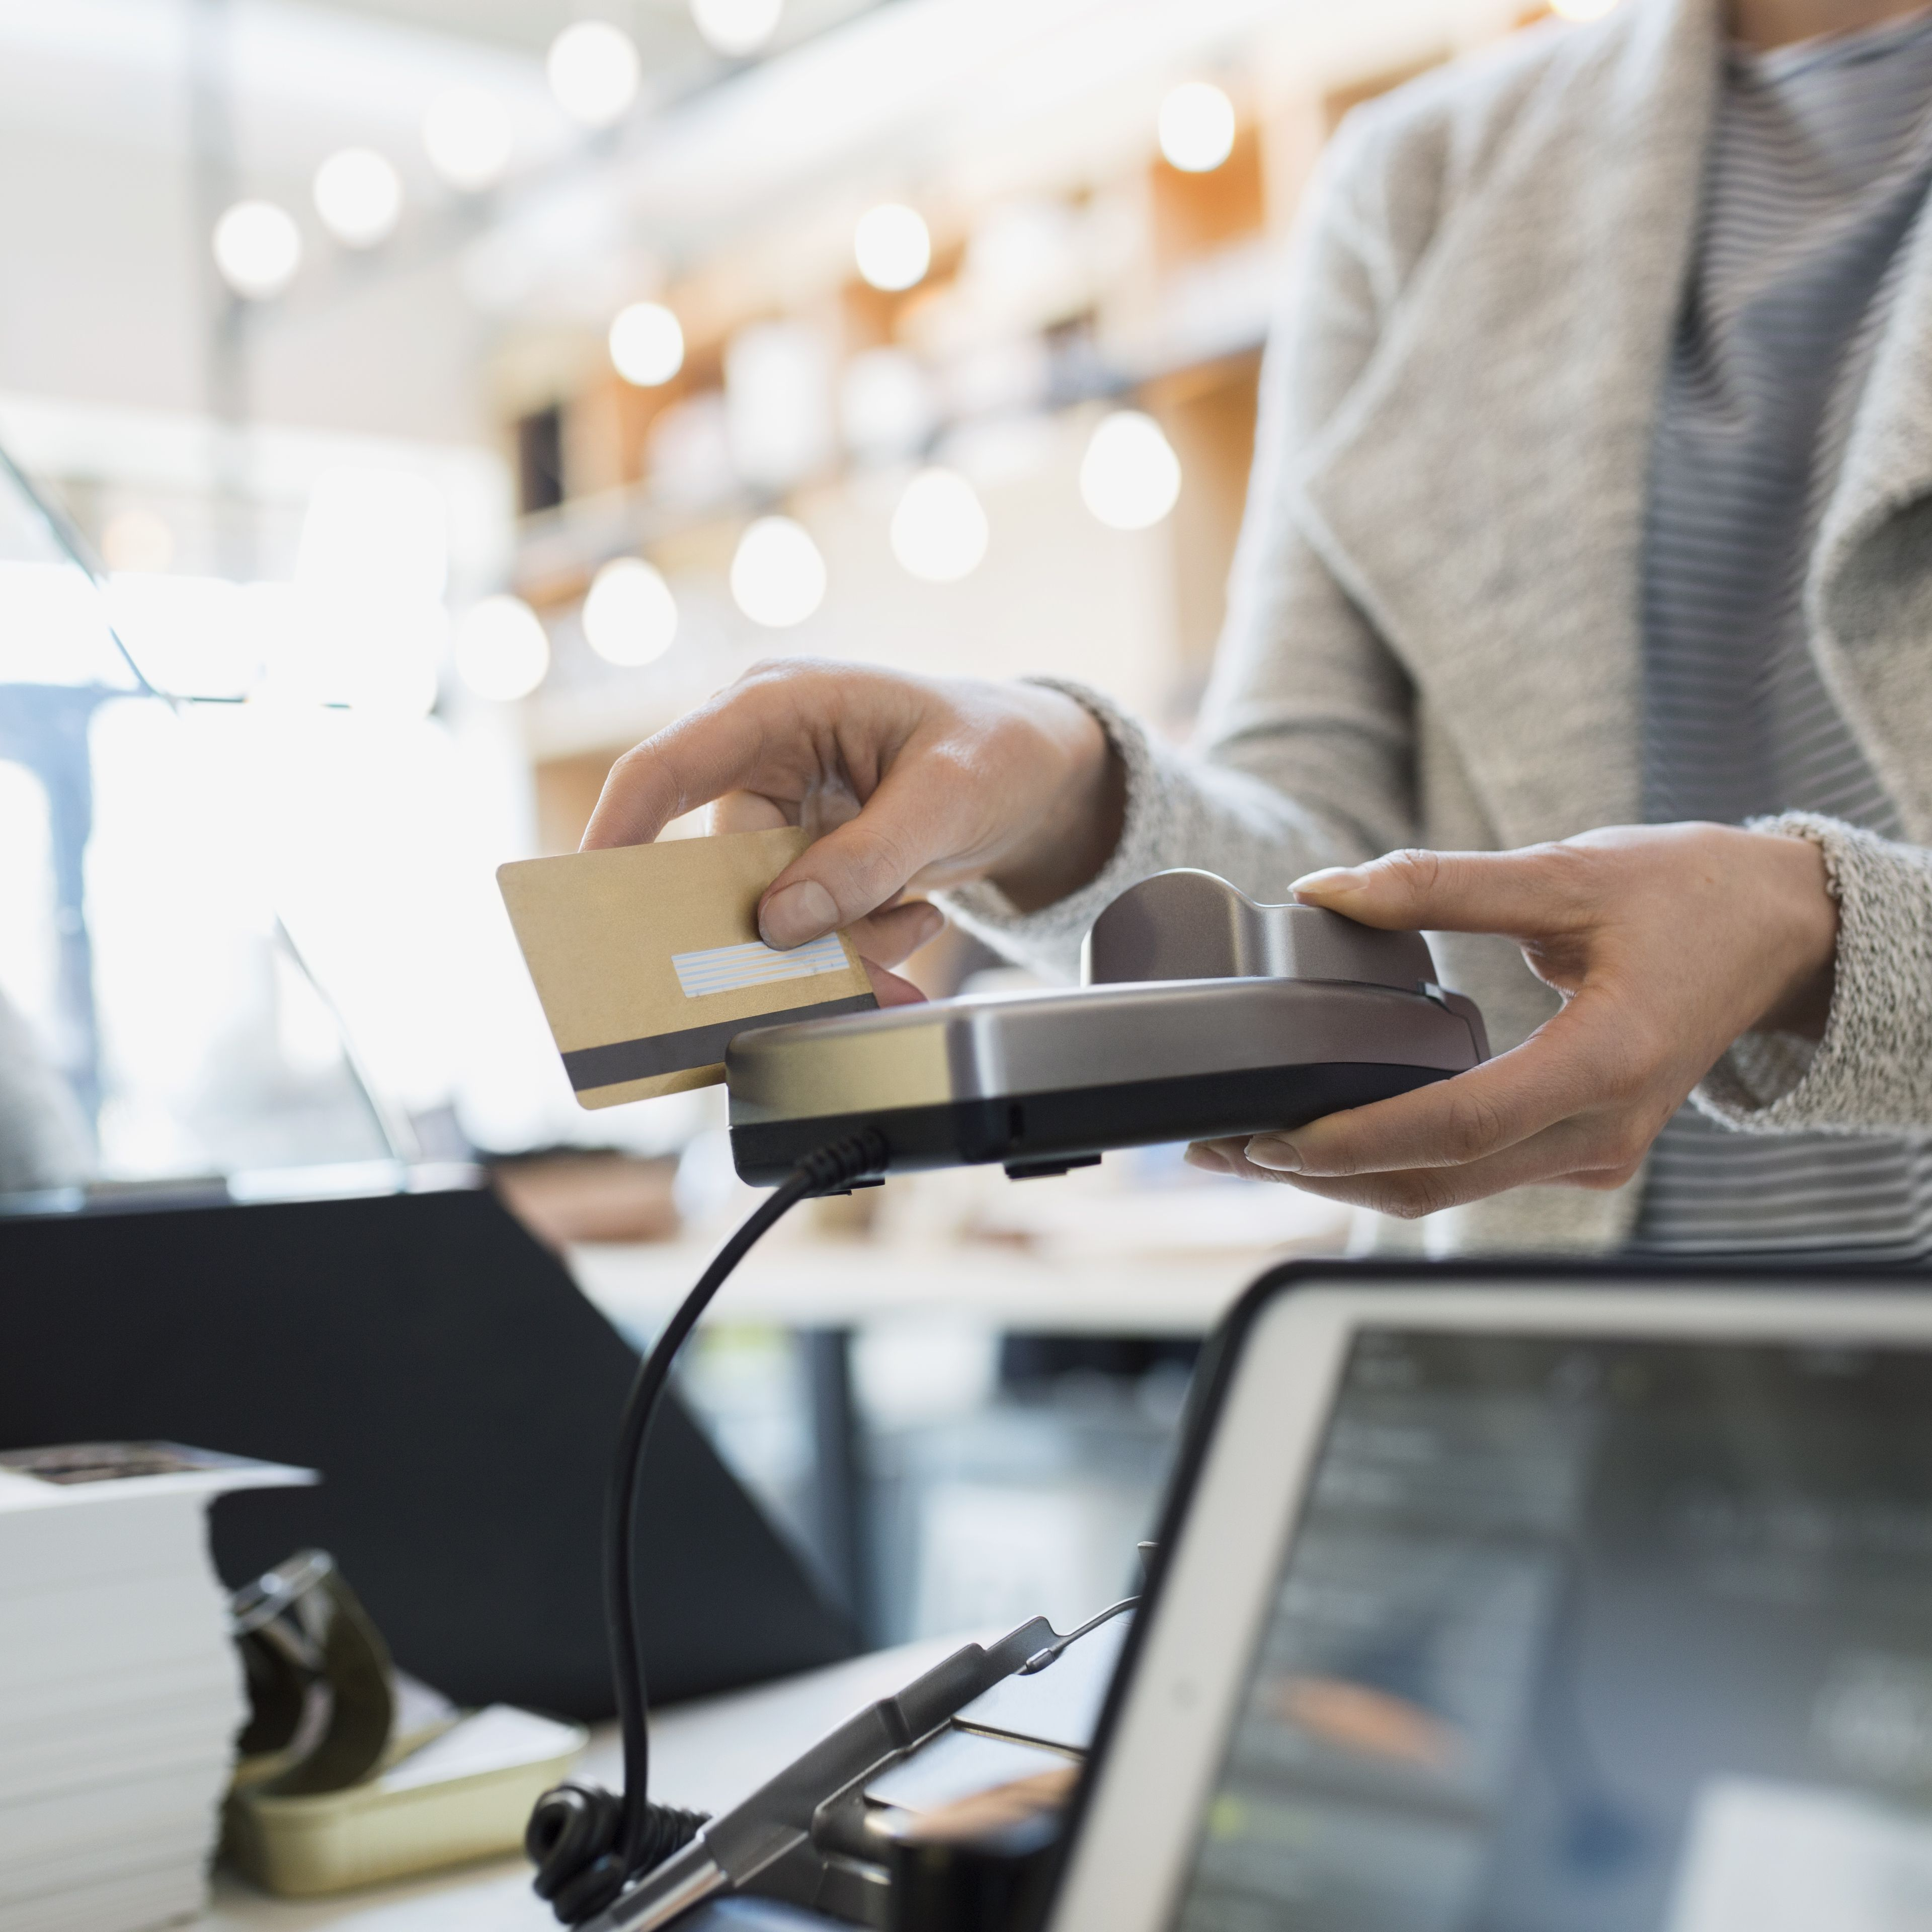 Tips for Using Debit Cards and Credit Cards in Canada